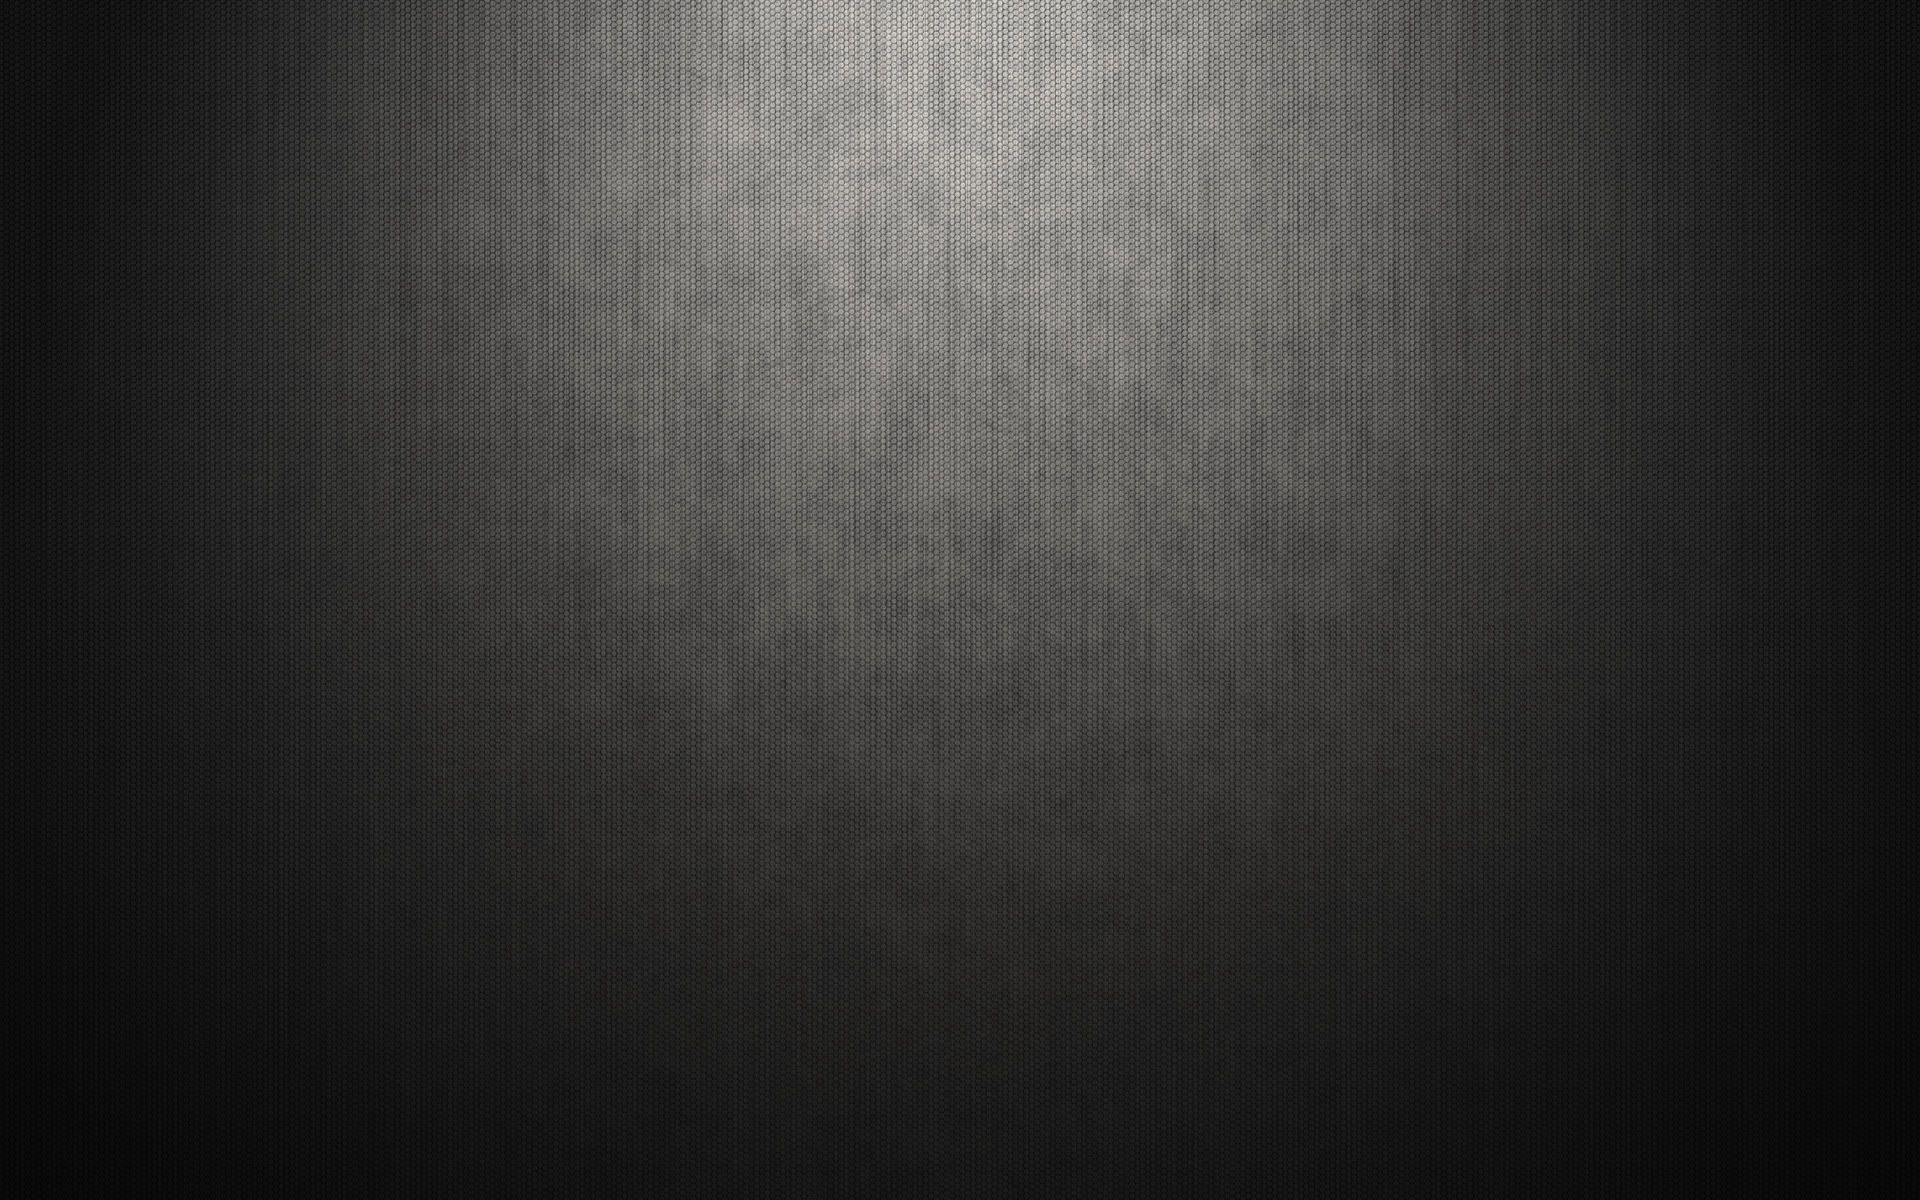 90608 download wallpaper Textures, Texture, Lines, Surface, Shadow, Grey screensavers and pictures for free